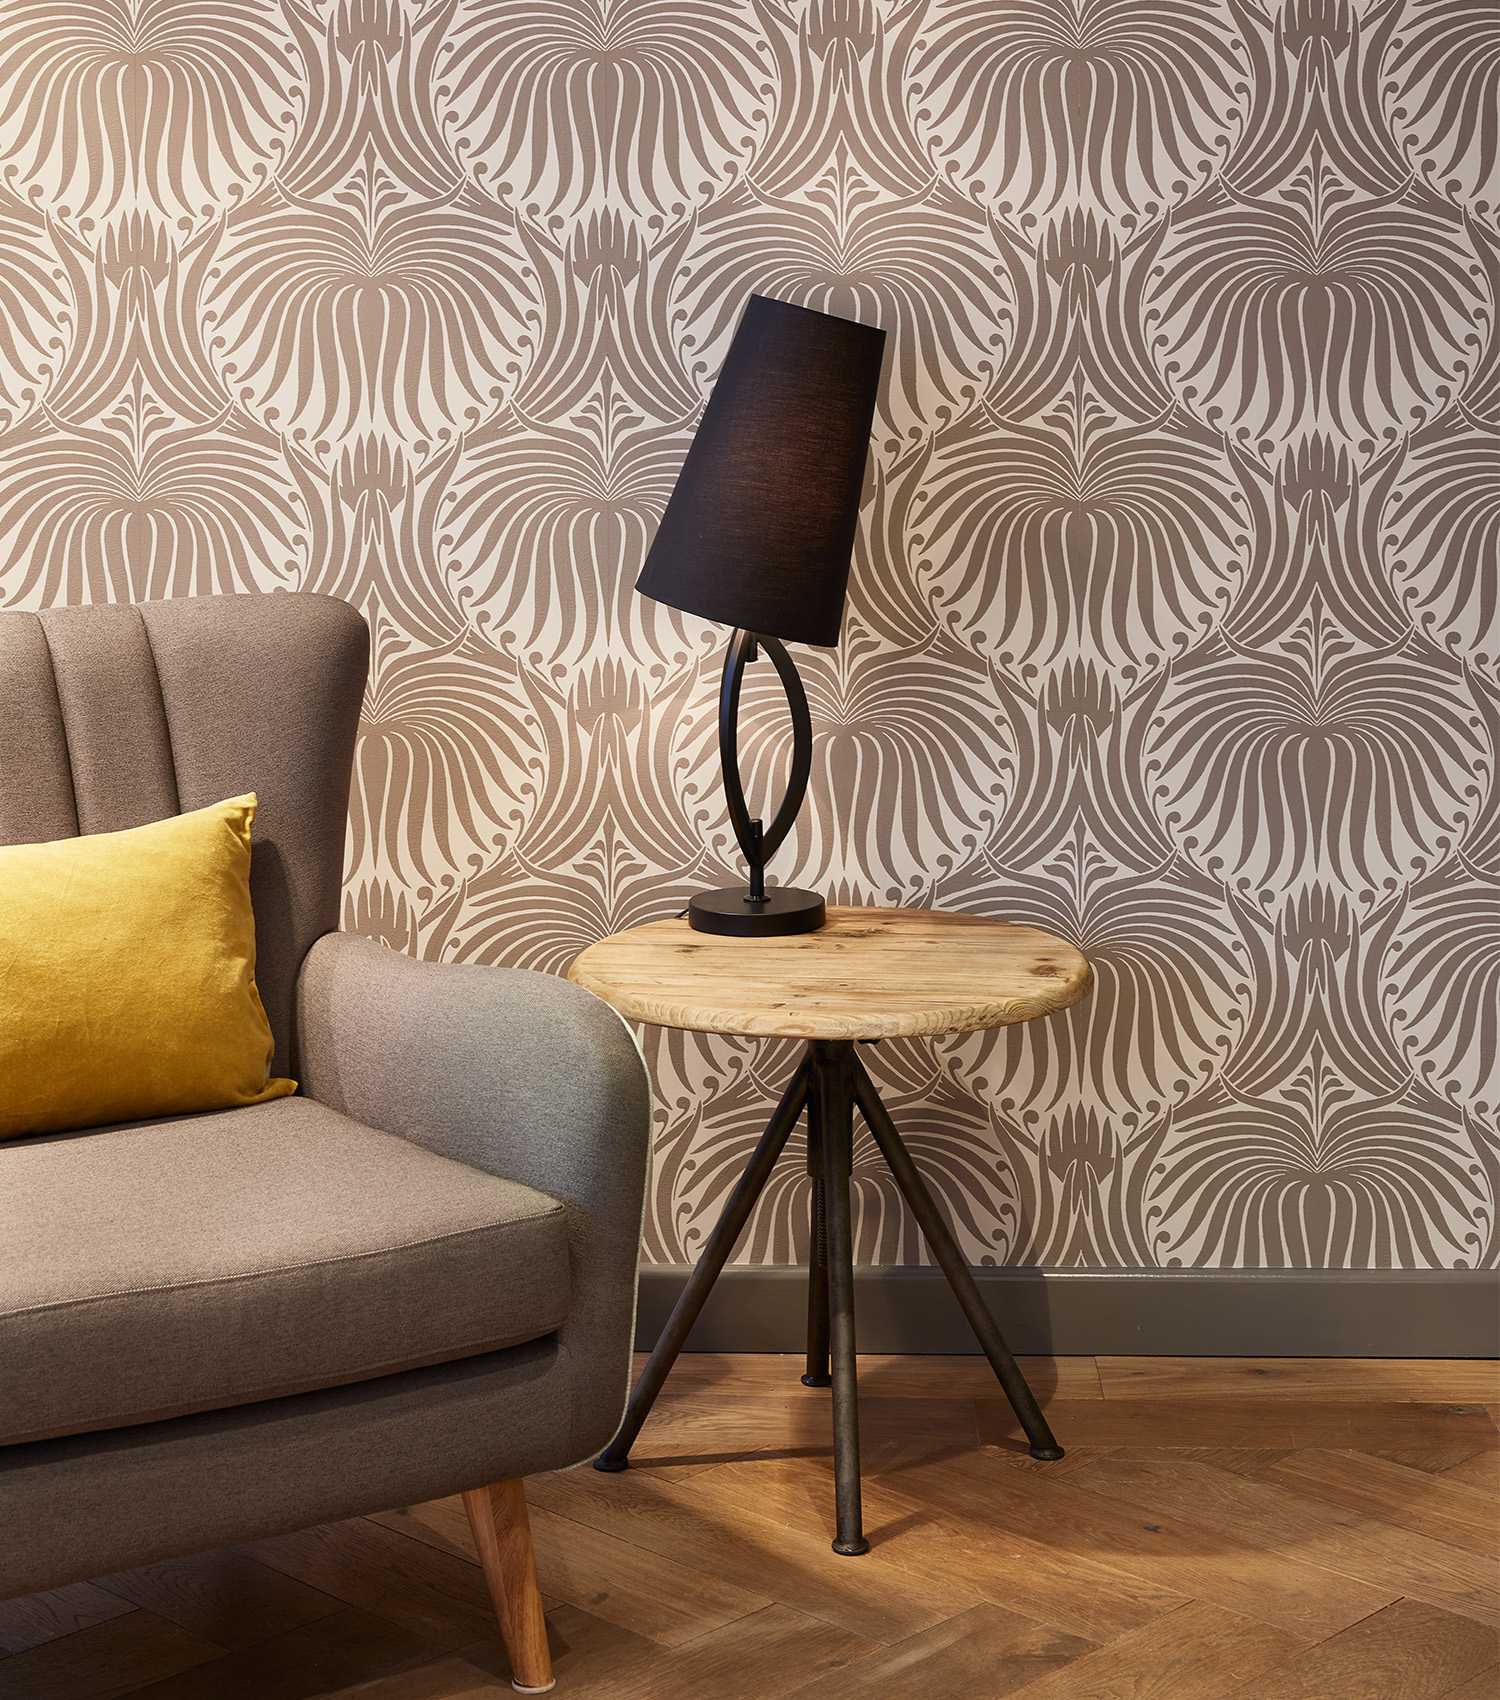 Farrow & Ball Lamp and decorative wall